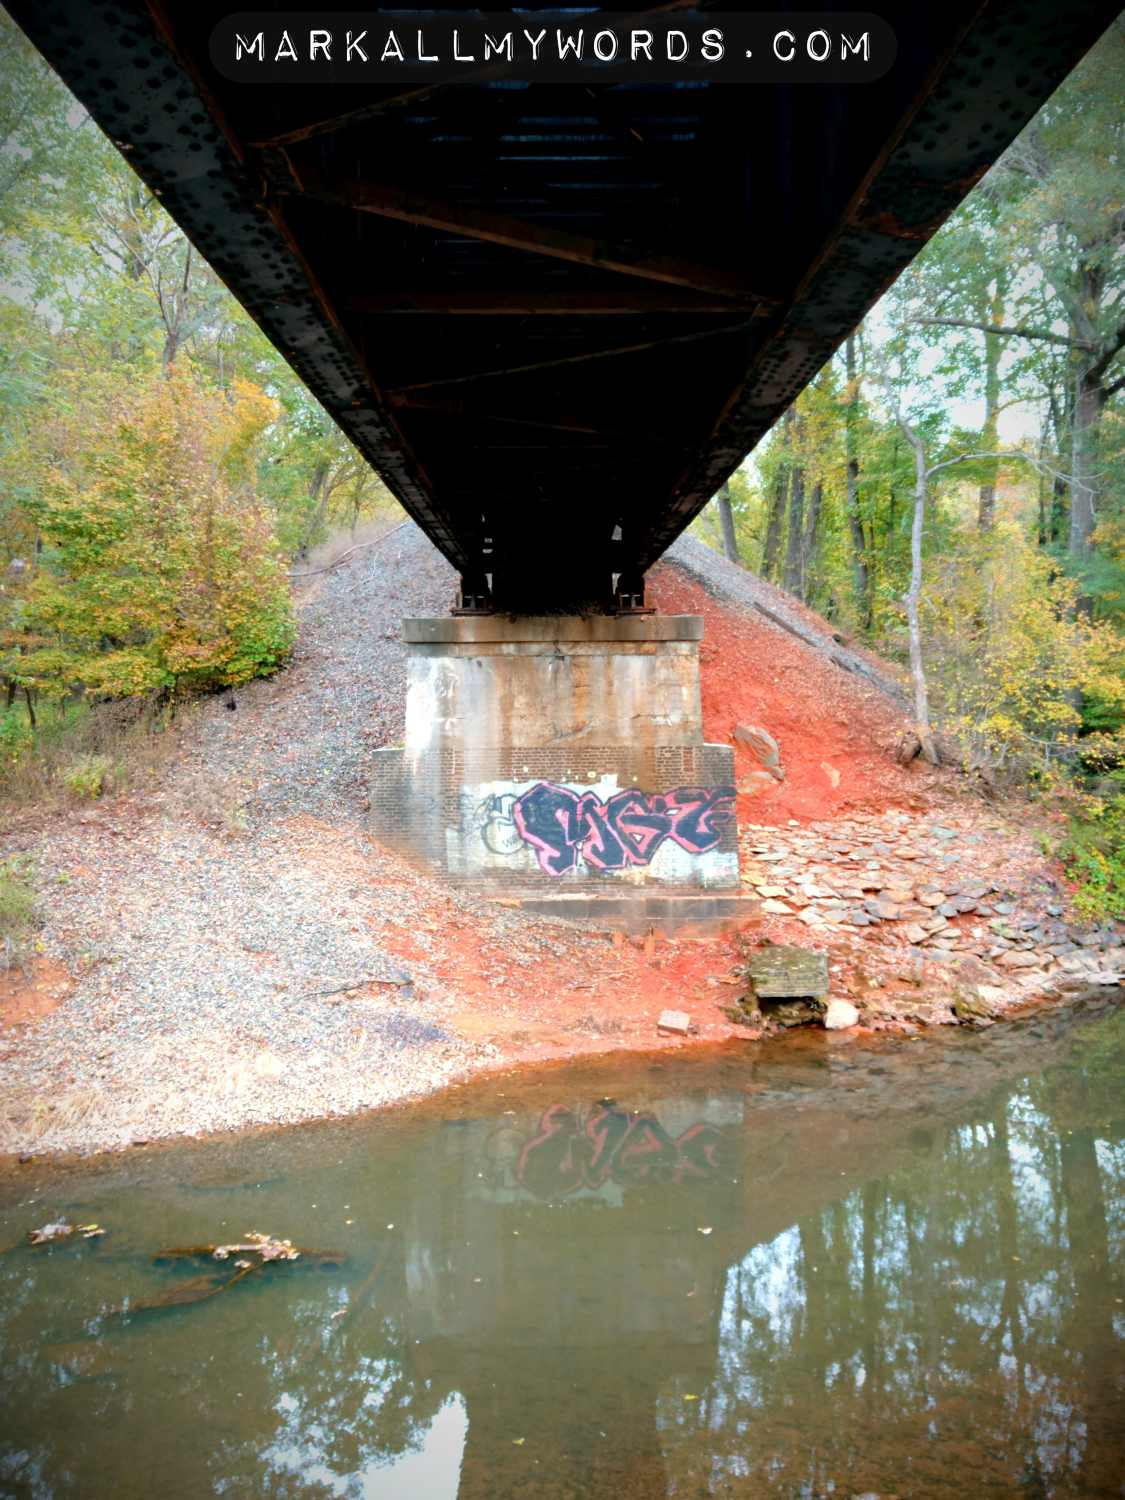 Underside of train trestle with graffiti